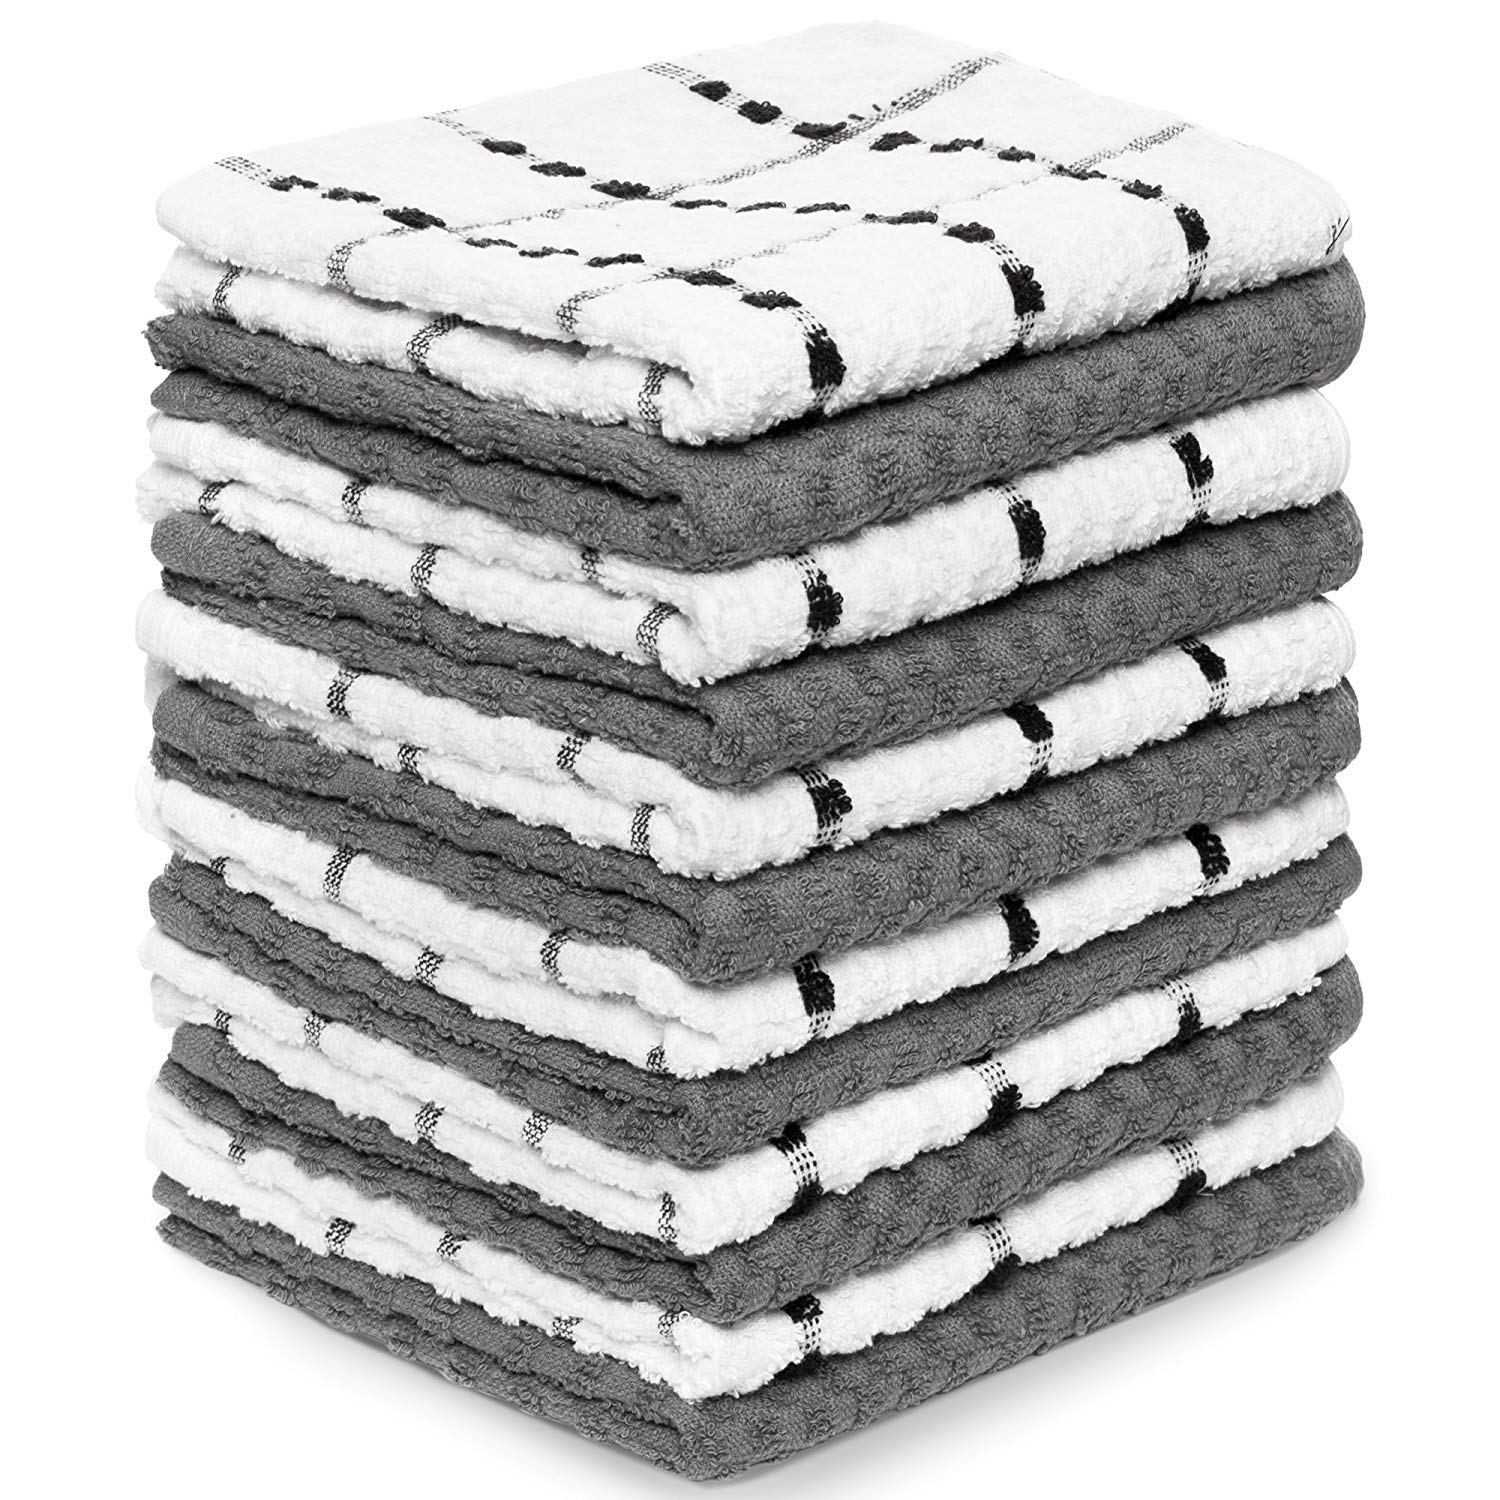 Zeppoli Kitchen Towels, 12 Pack - 100% Soft Cotton - 15 x 25 Inches - Dobby Weave - Great for Cooking in Kitchen and Household Cleaning (12-Pack) by Zeppoli